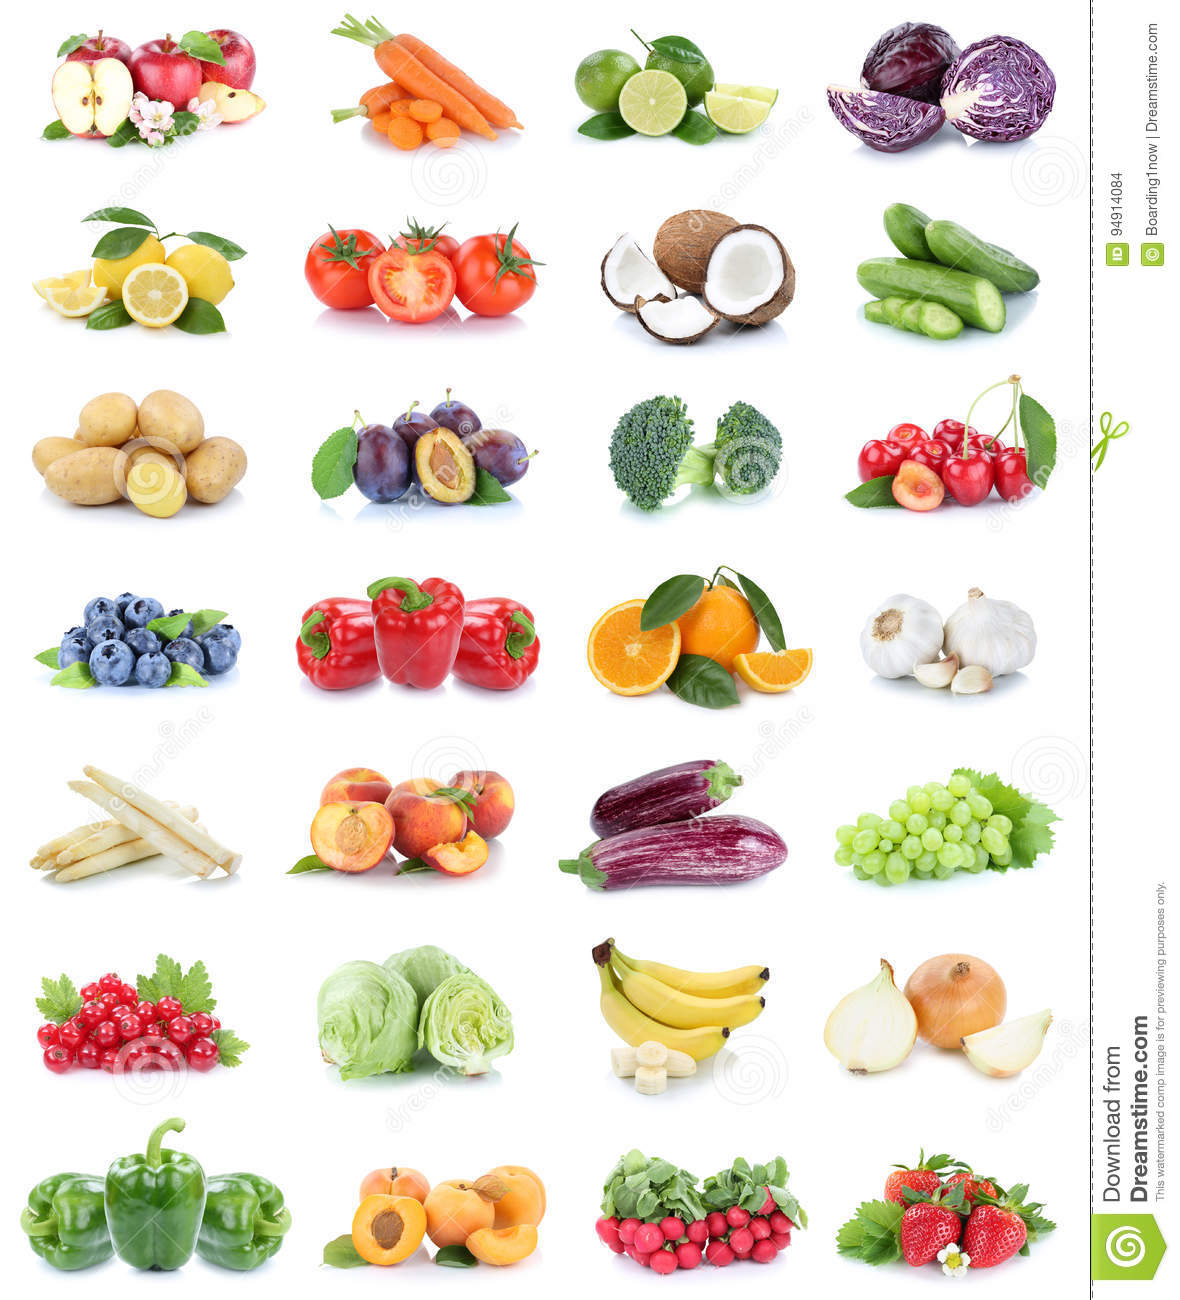 Fruits and vegetables collection apples oranges bell pepper strawberries bananas vegetable food isolated